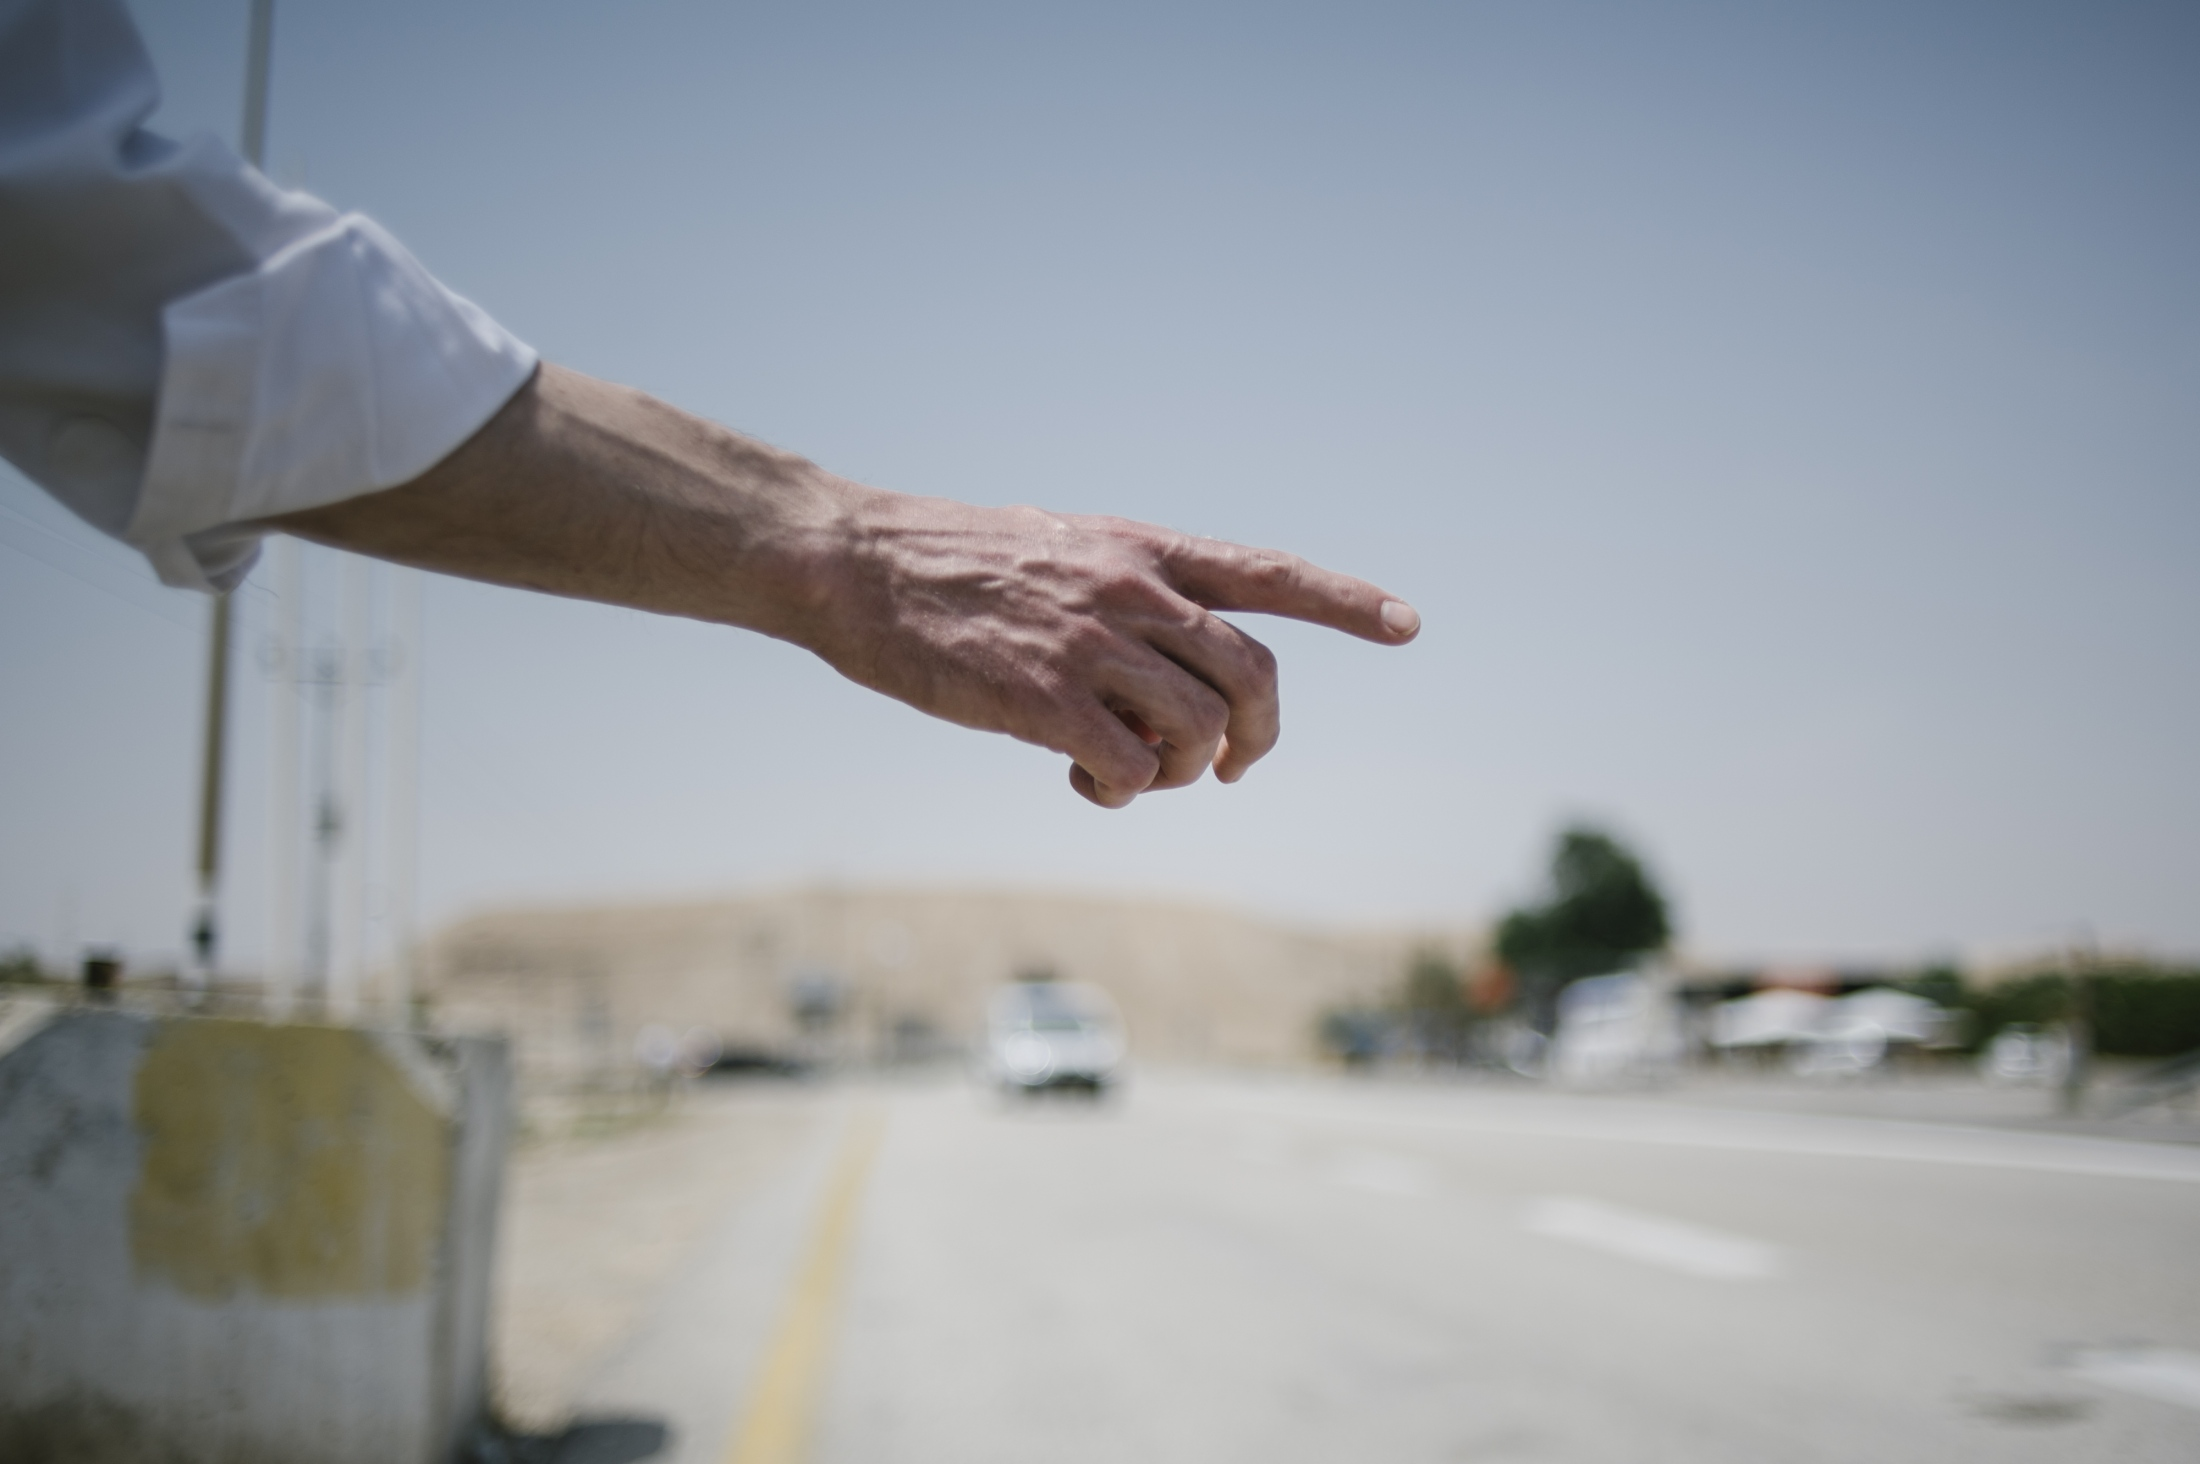 Art and Documentary Photography - Loading GHG_Hitchhiking_Redux022.JPG